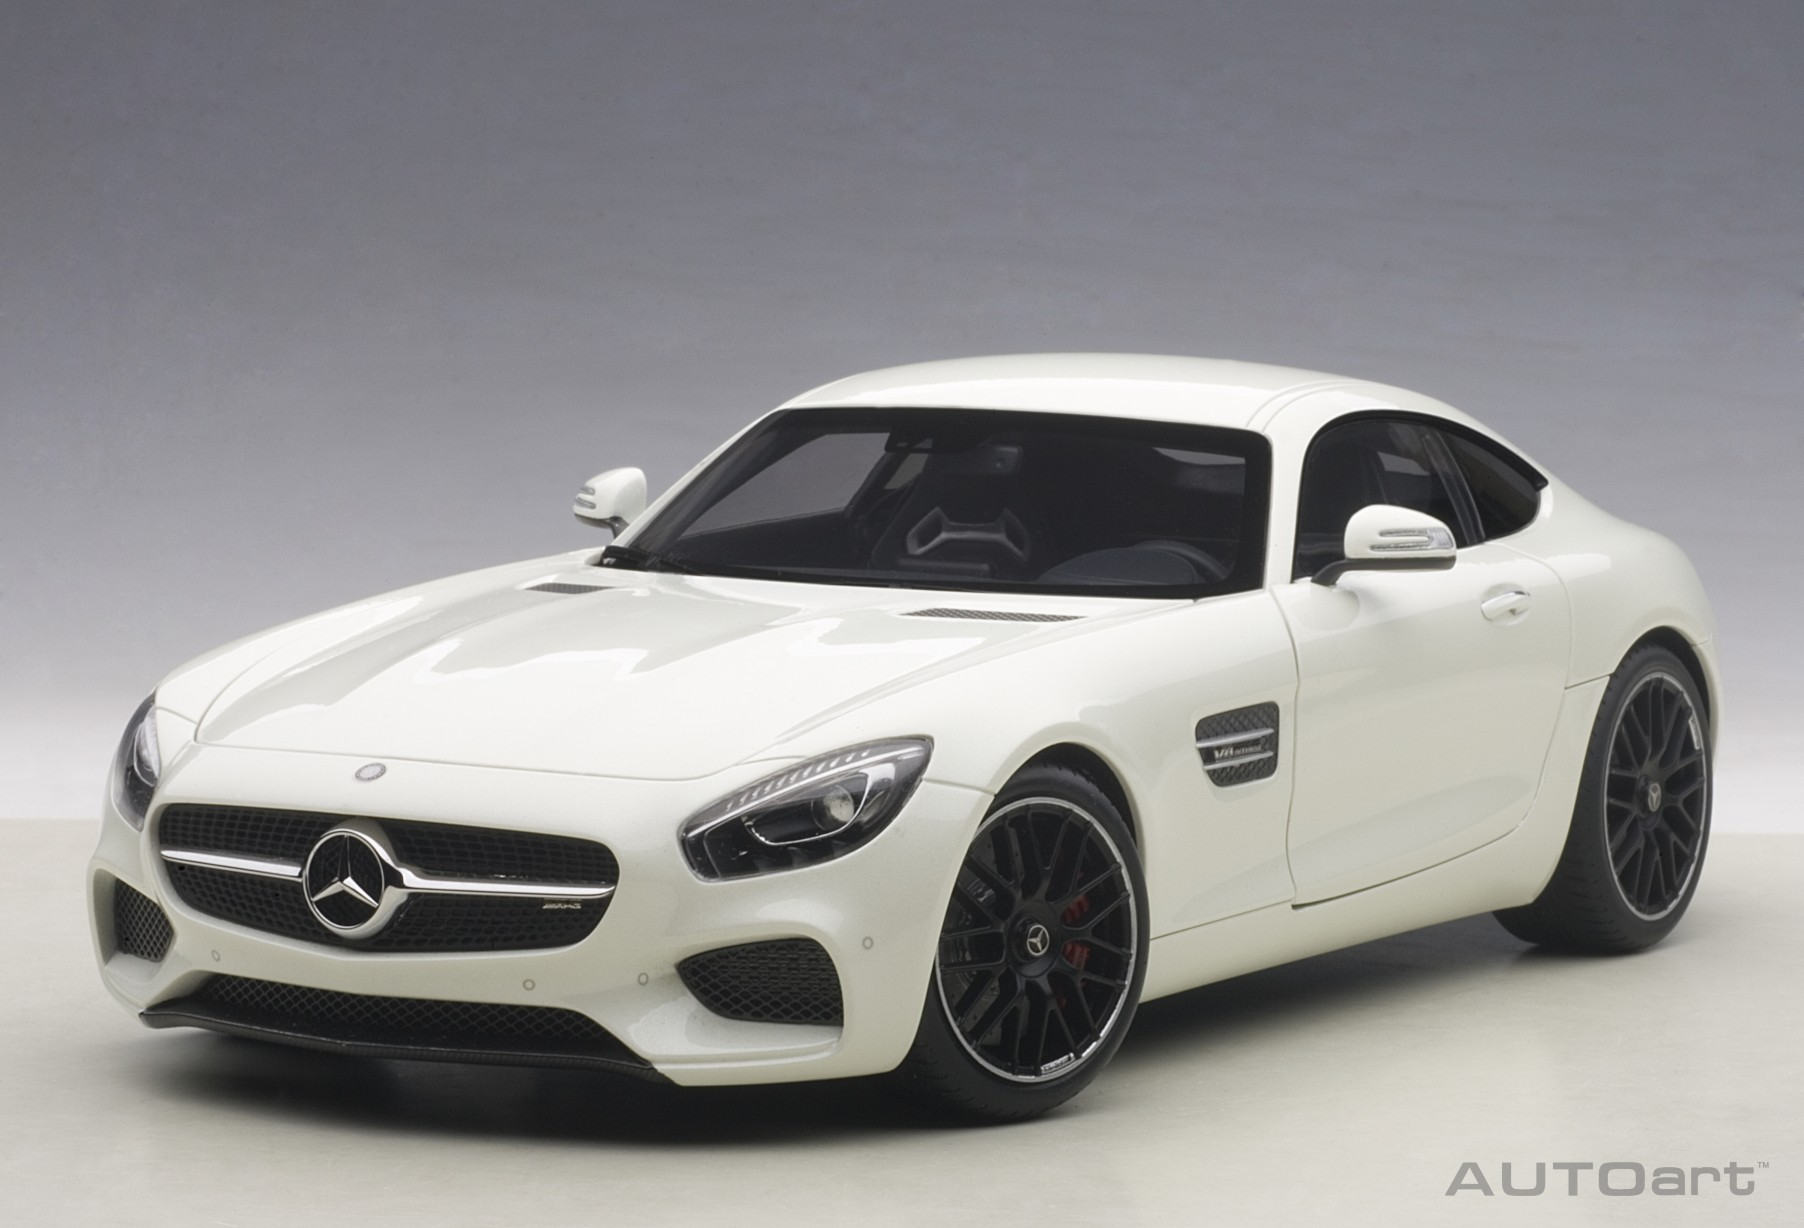 76311 mercedes benz amg gt s weiss 1 18 autoart nur 211. Black Bedroom Furniture Sets. Home Design Ideas